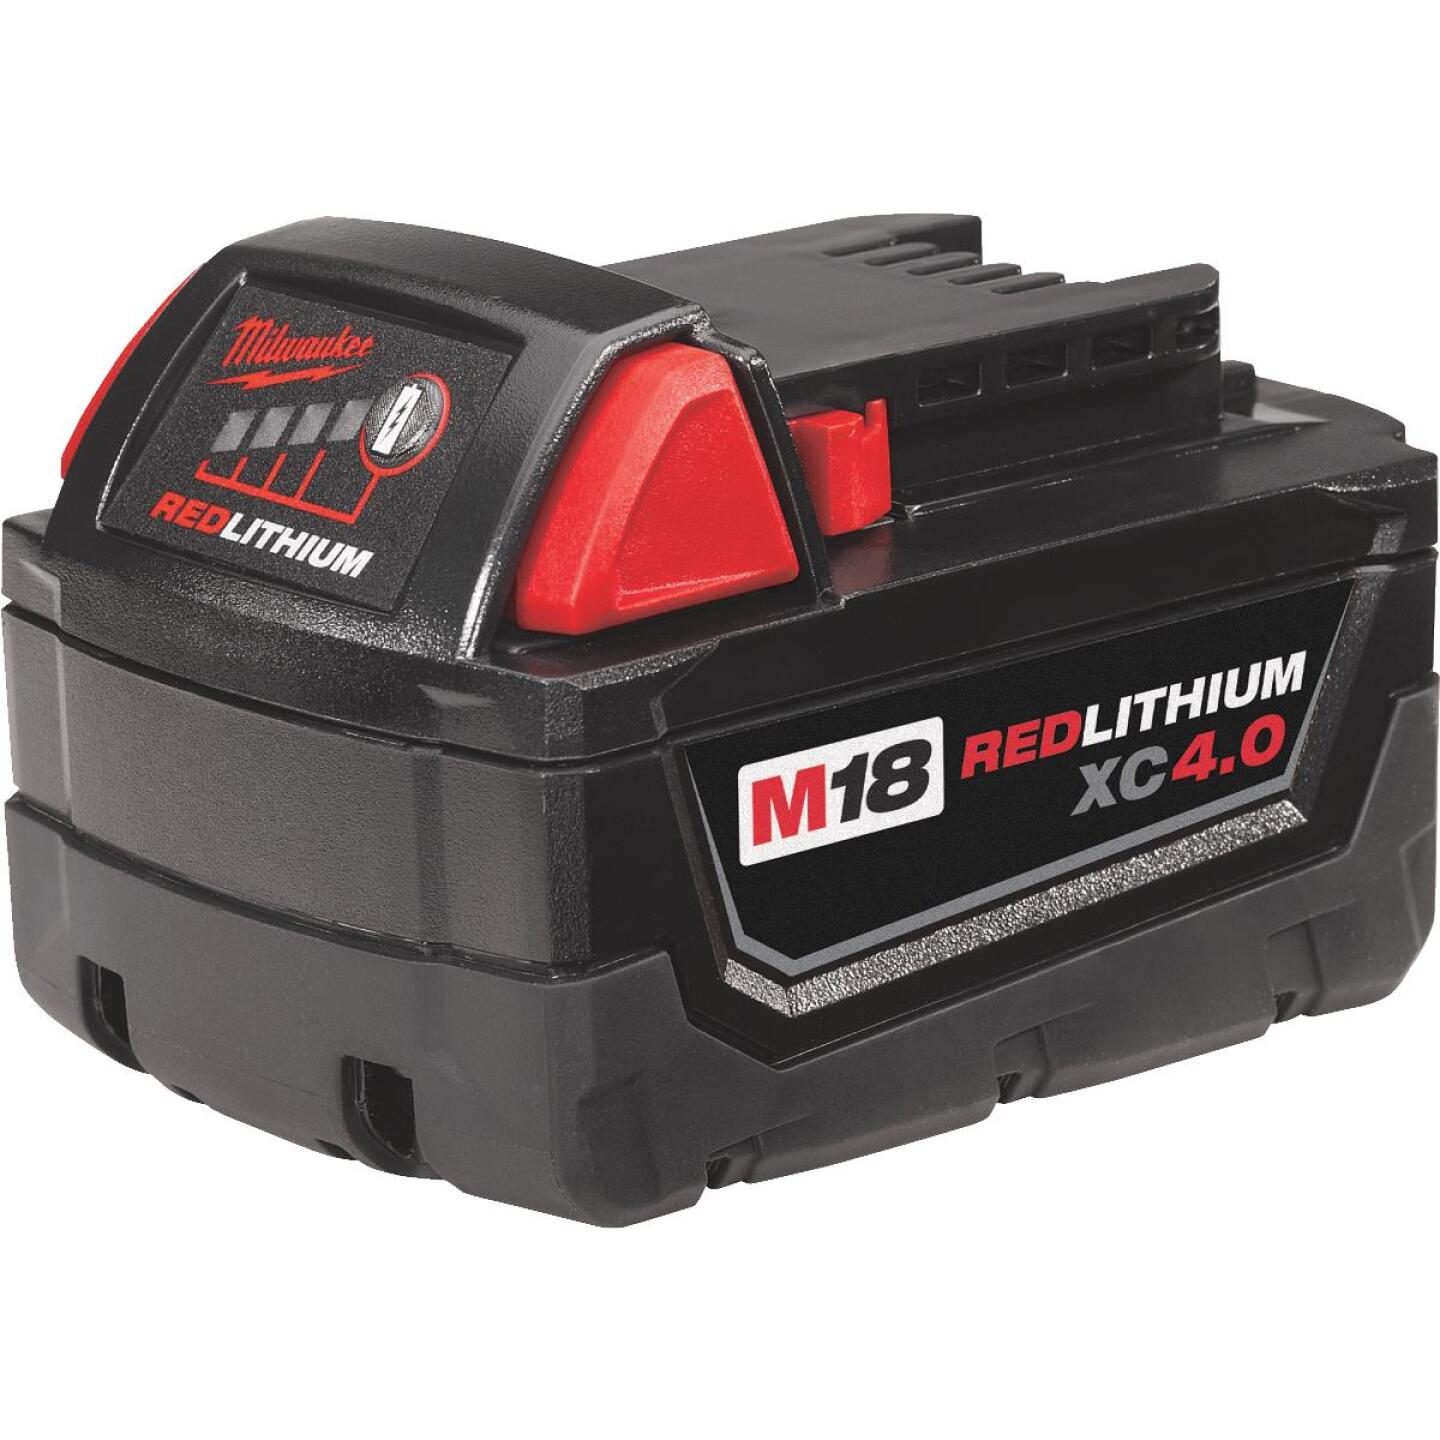 Milwaukee M18 REDLITHIUM XC 18 Volt Lithium-Ion 4.0 Ah Extended Capacity Tool Battery Image 2